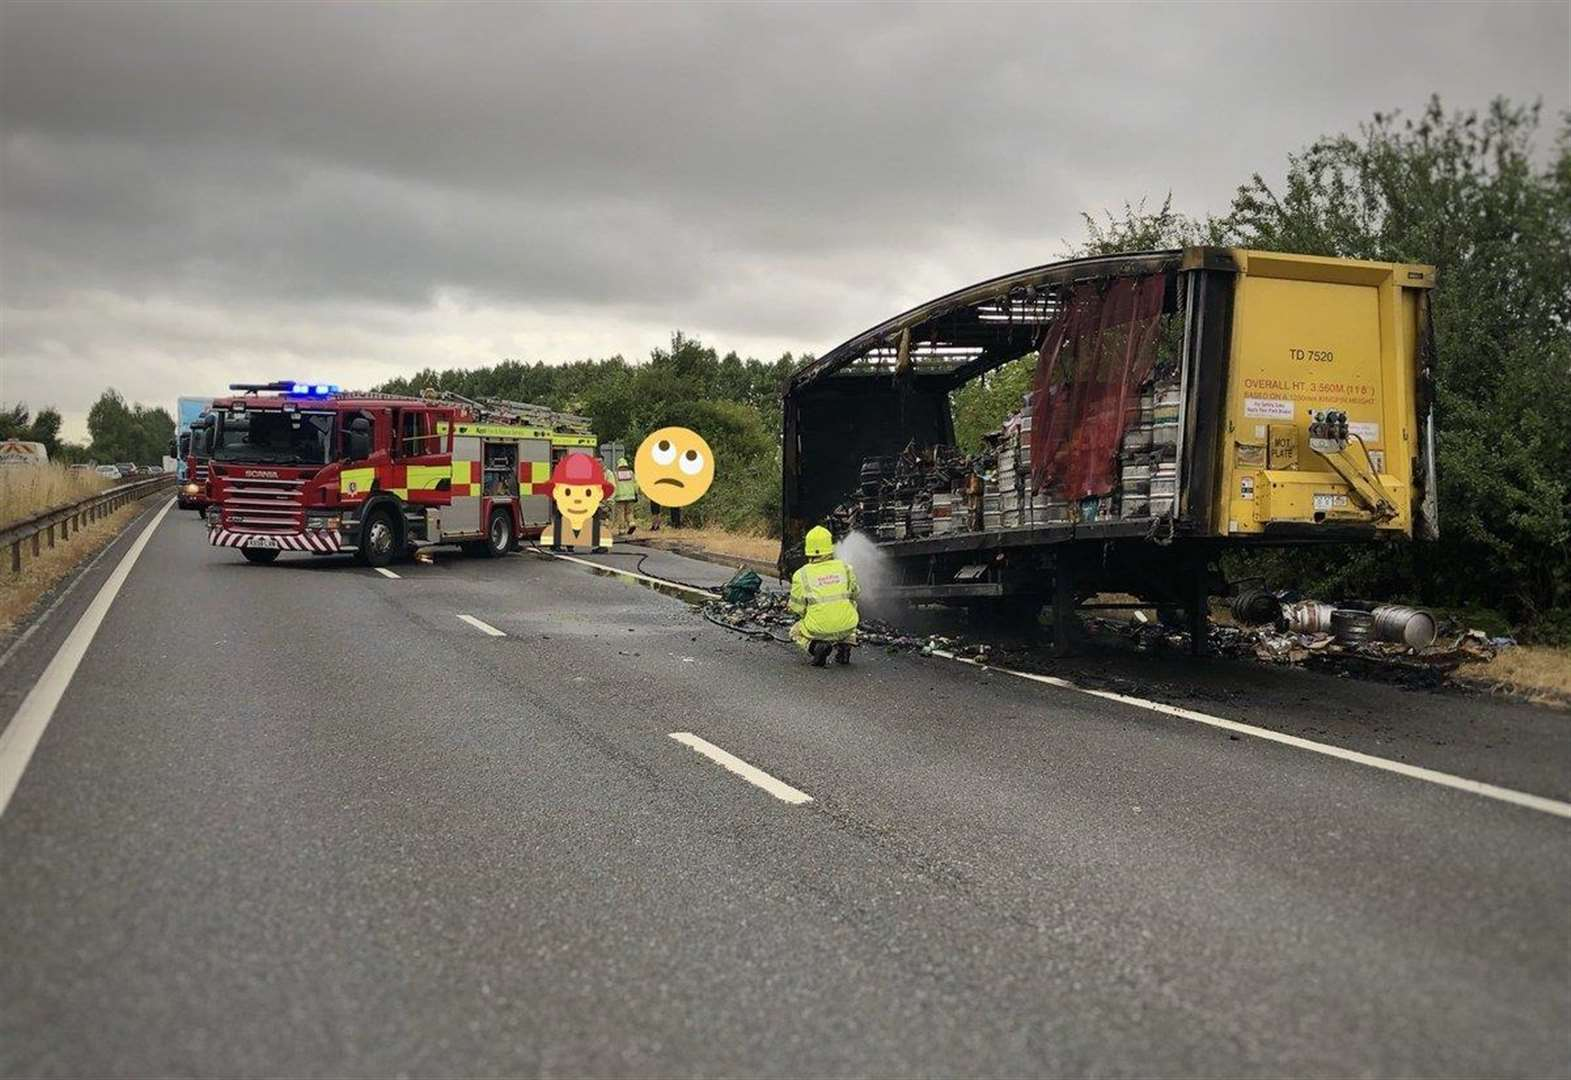 Booze truck fire causes delays on M2